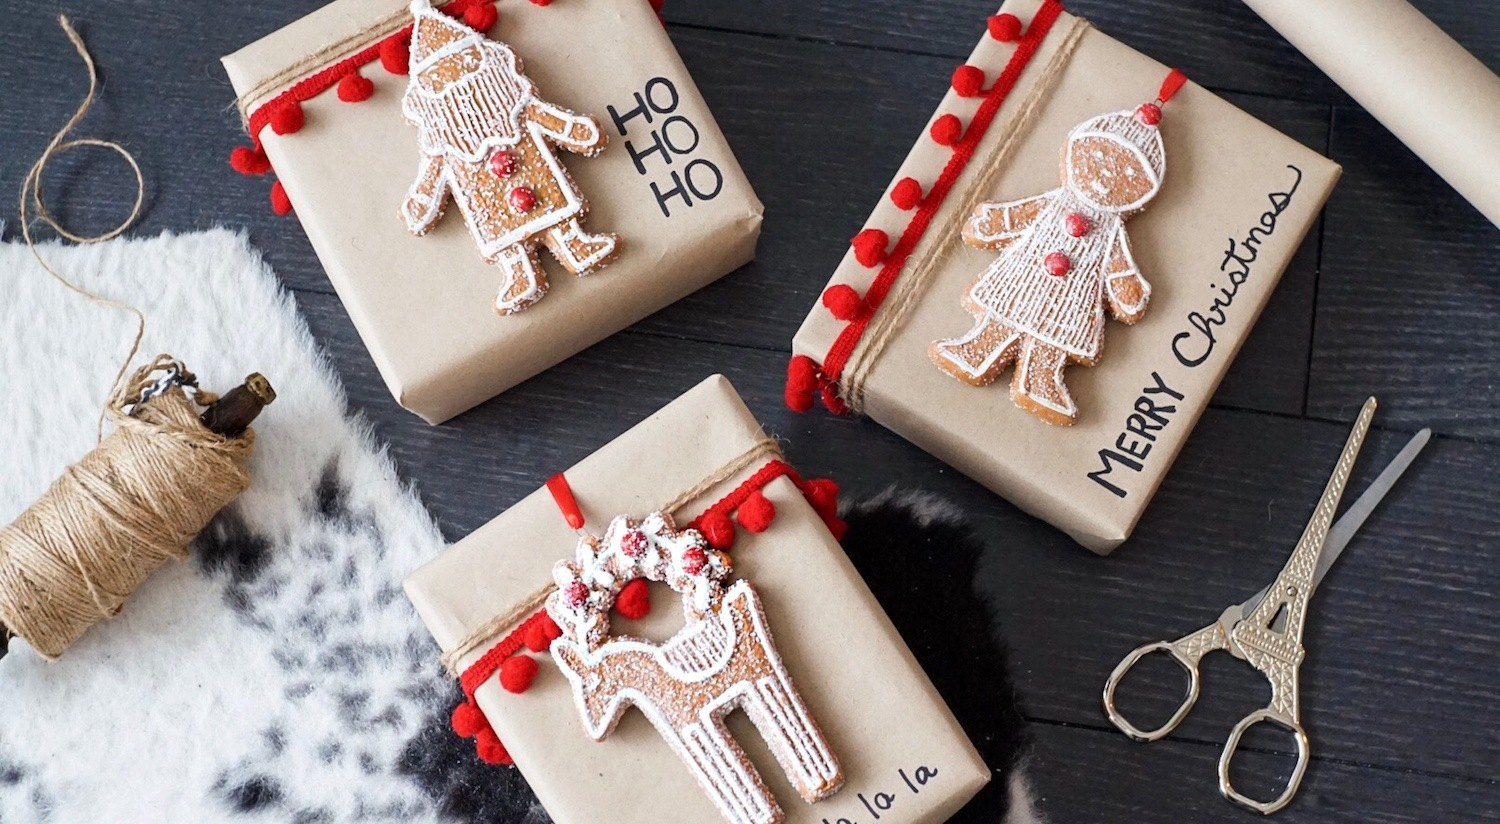 7 Creative And Beautiful Gift Wrapping Ideas You'll Love